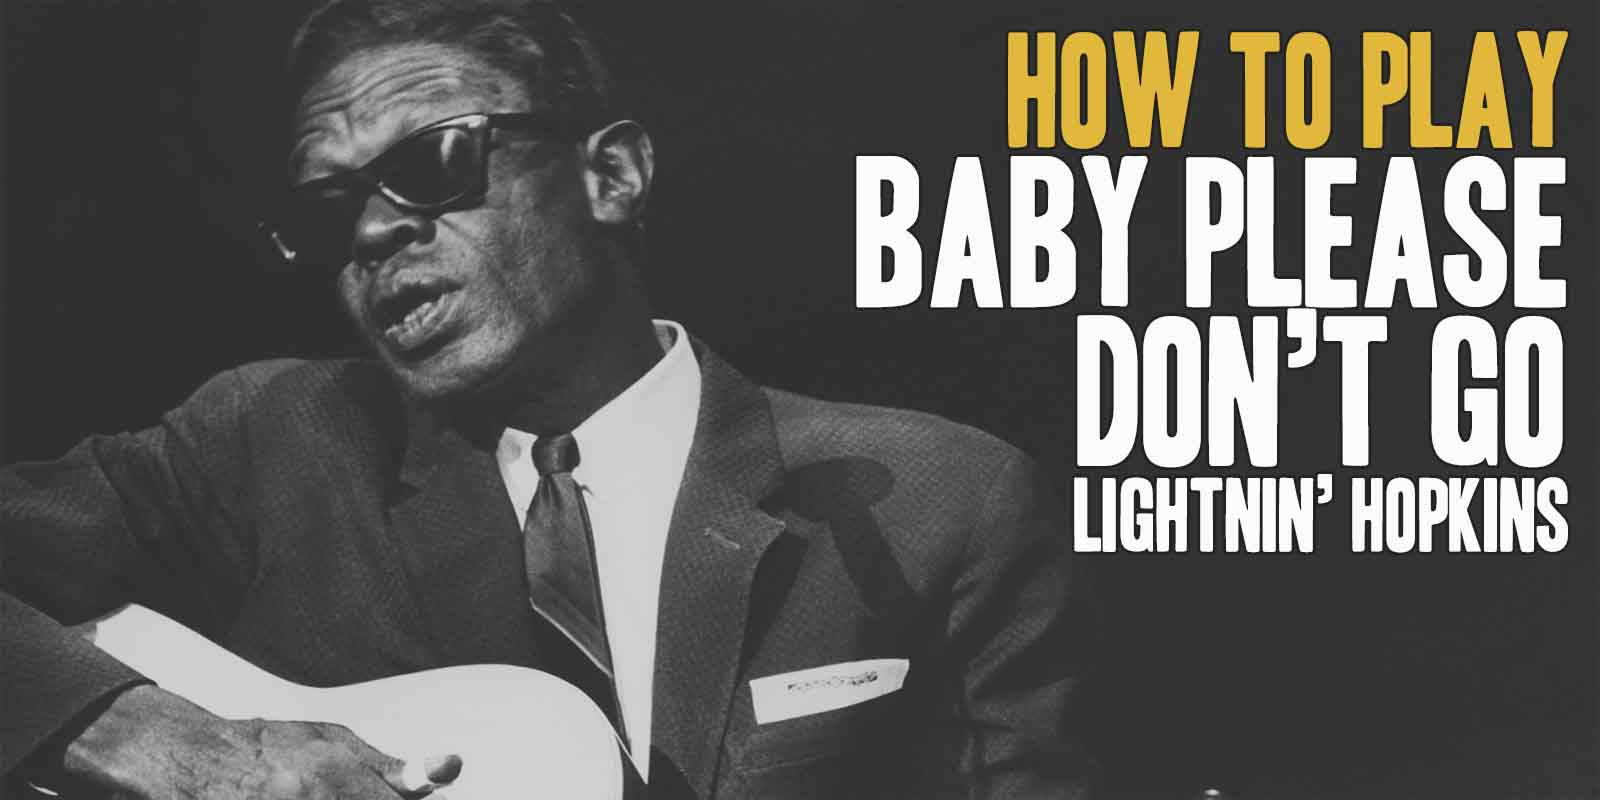 How To Play Baby Please Don't Go (Lightnin Hopkins) Burninguitar show you how to play Baby Please Don't Go by Lightnin Hopkins. A great song of  Delta Blues Guitar. Music Score included in pdf and in guitar pro tab. Baby Please Don't Go lesson include 5 videos and music sheets available for download (both Baby Please Don't Go pdf and Baby Please Don't Go gpx)